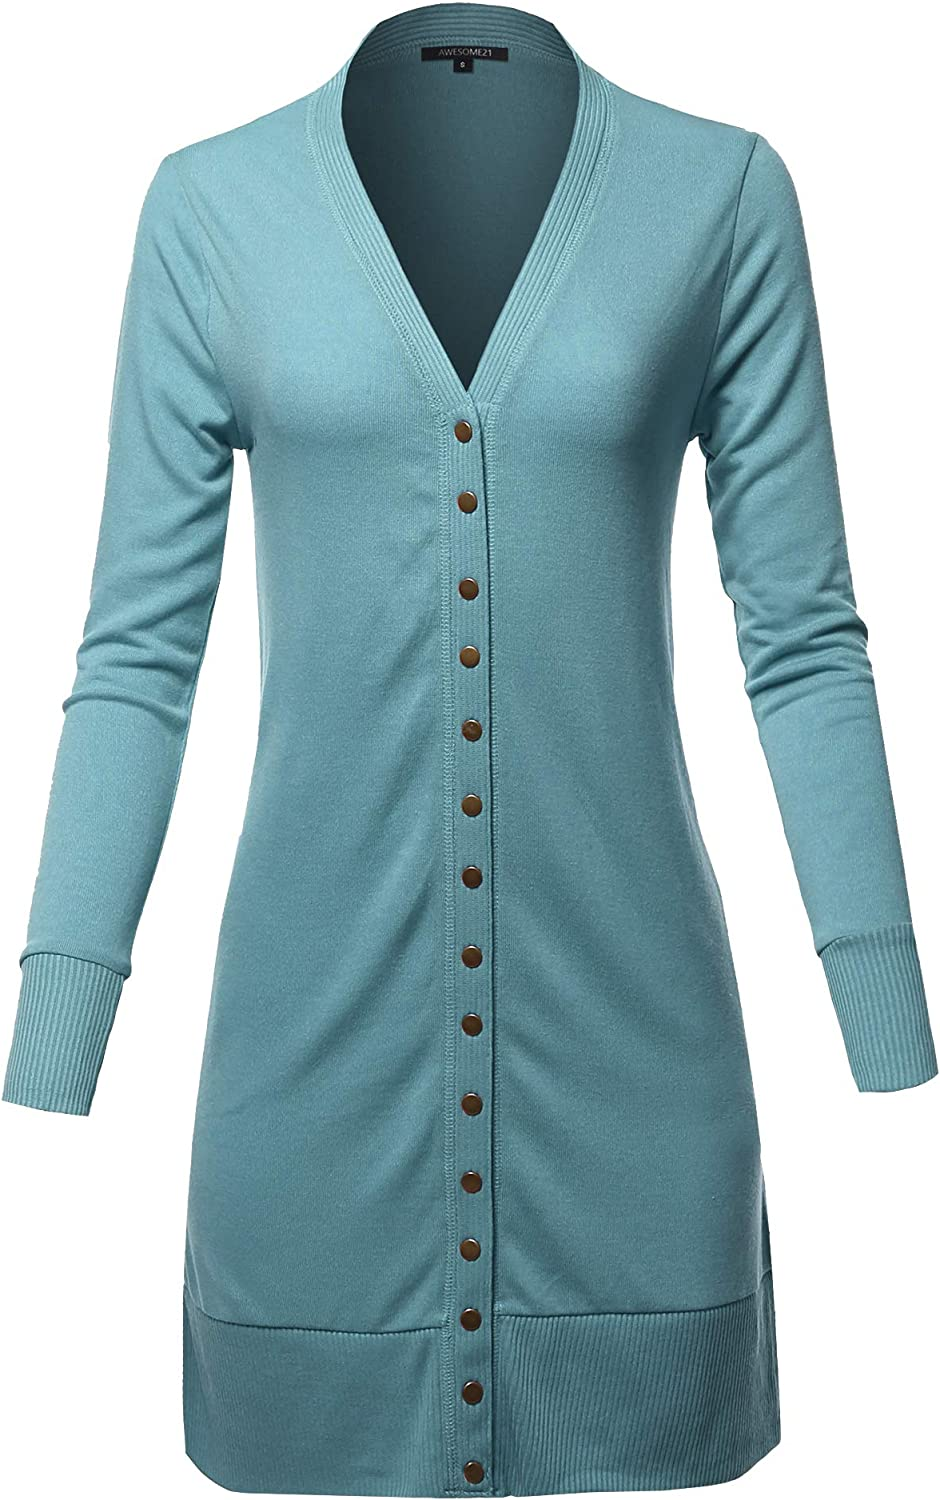 Awesome21 Women's Causal Snap Button Long Sleeves Everyday Long Cardigan